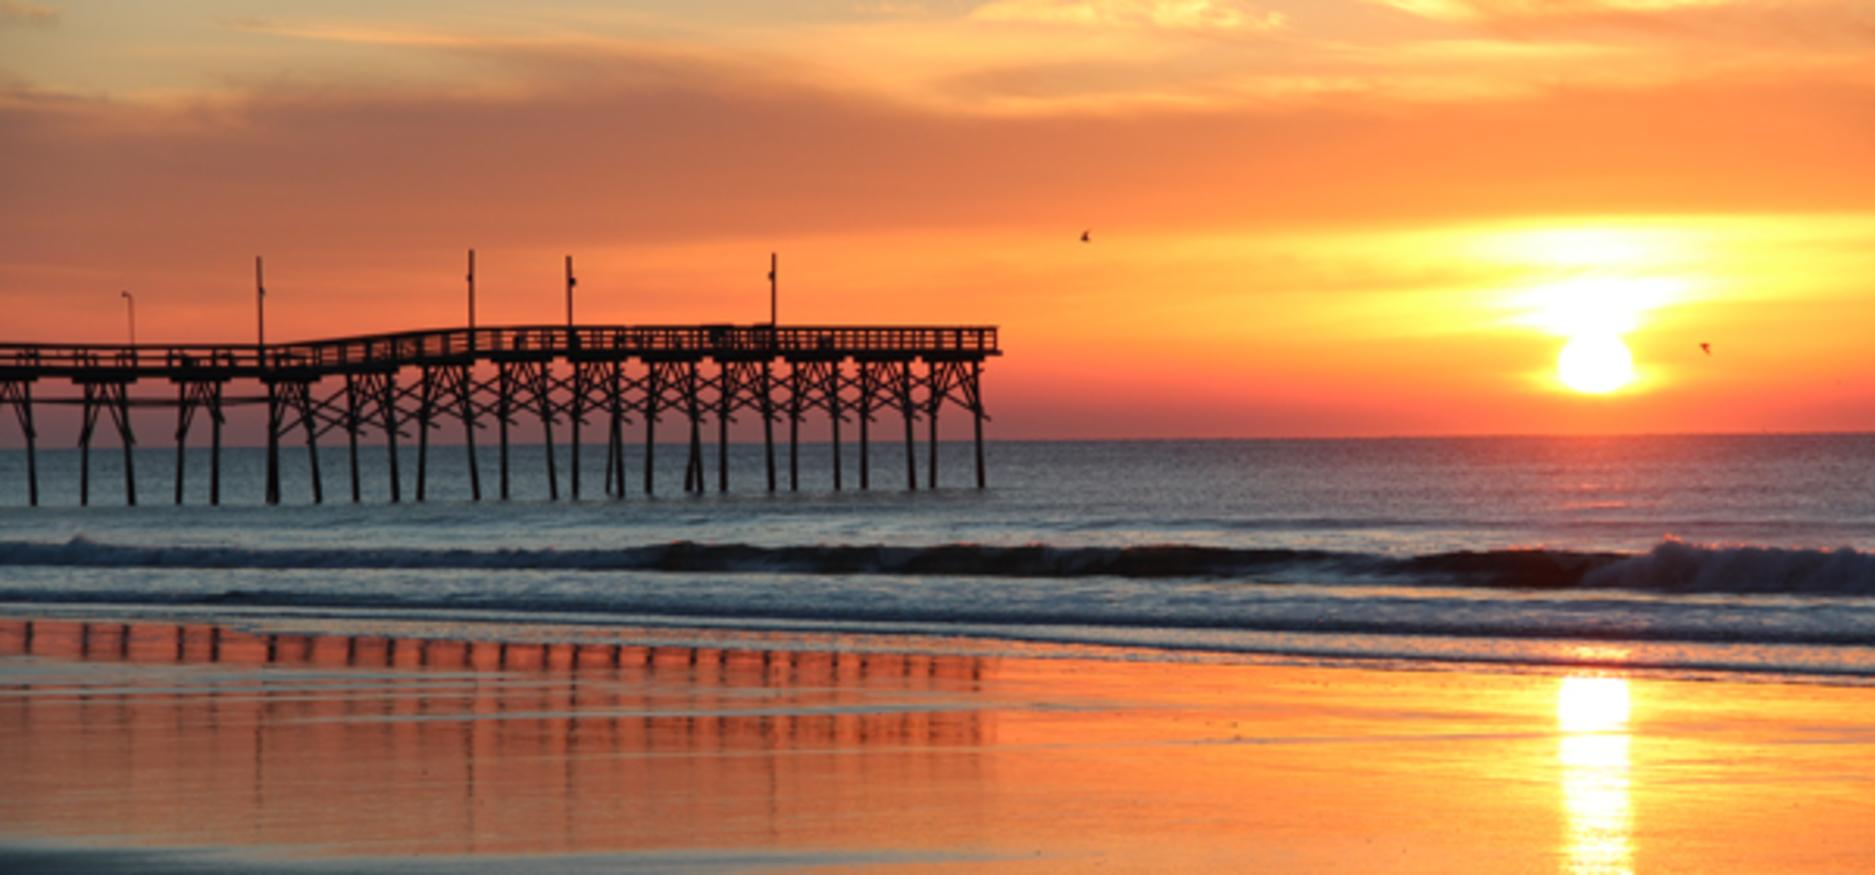 Fall in Love with the Sunrises and Sunsets in NC's Brunswick Islands